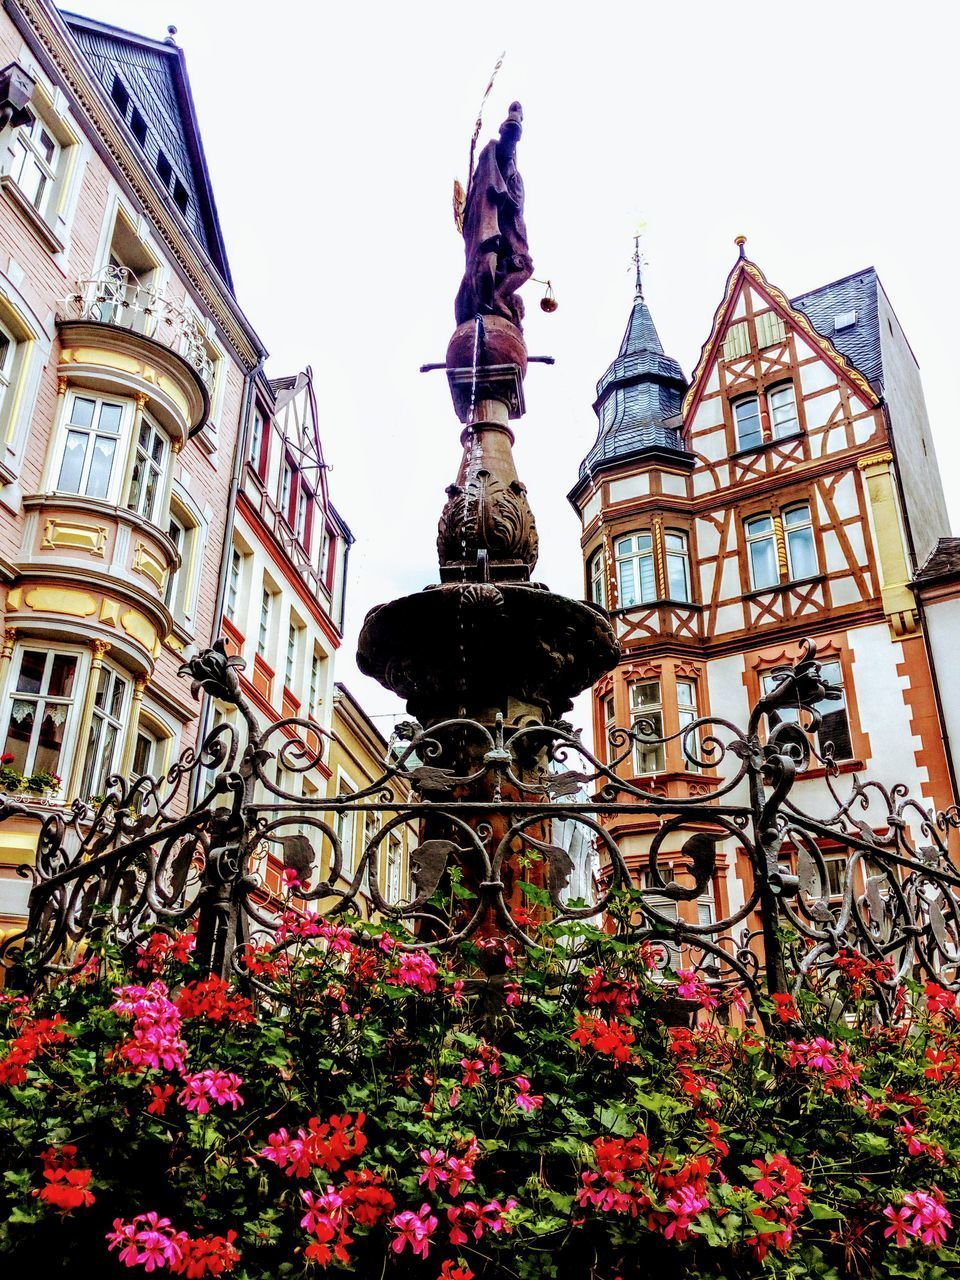 building exterior, architecture, built structure, flower, plant, flowering plant, art and craft, low angle view, building, sculpture, nature, no people, statue, day, human representation, sky, representation, history, the past, city, outdoors, ornate